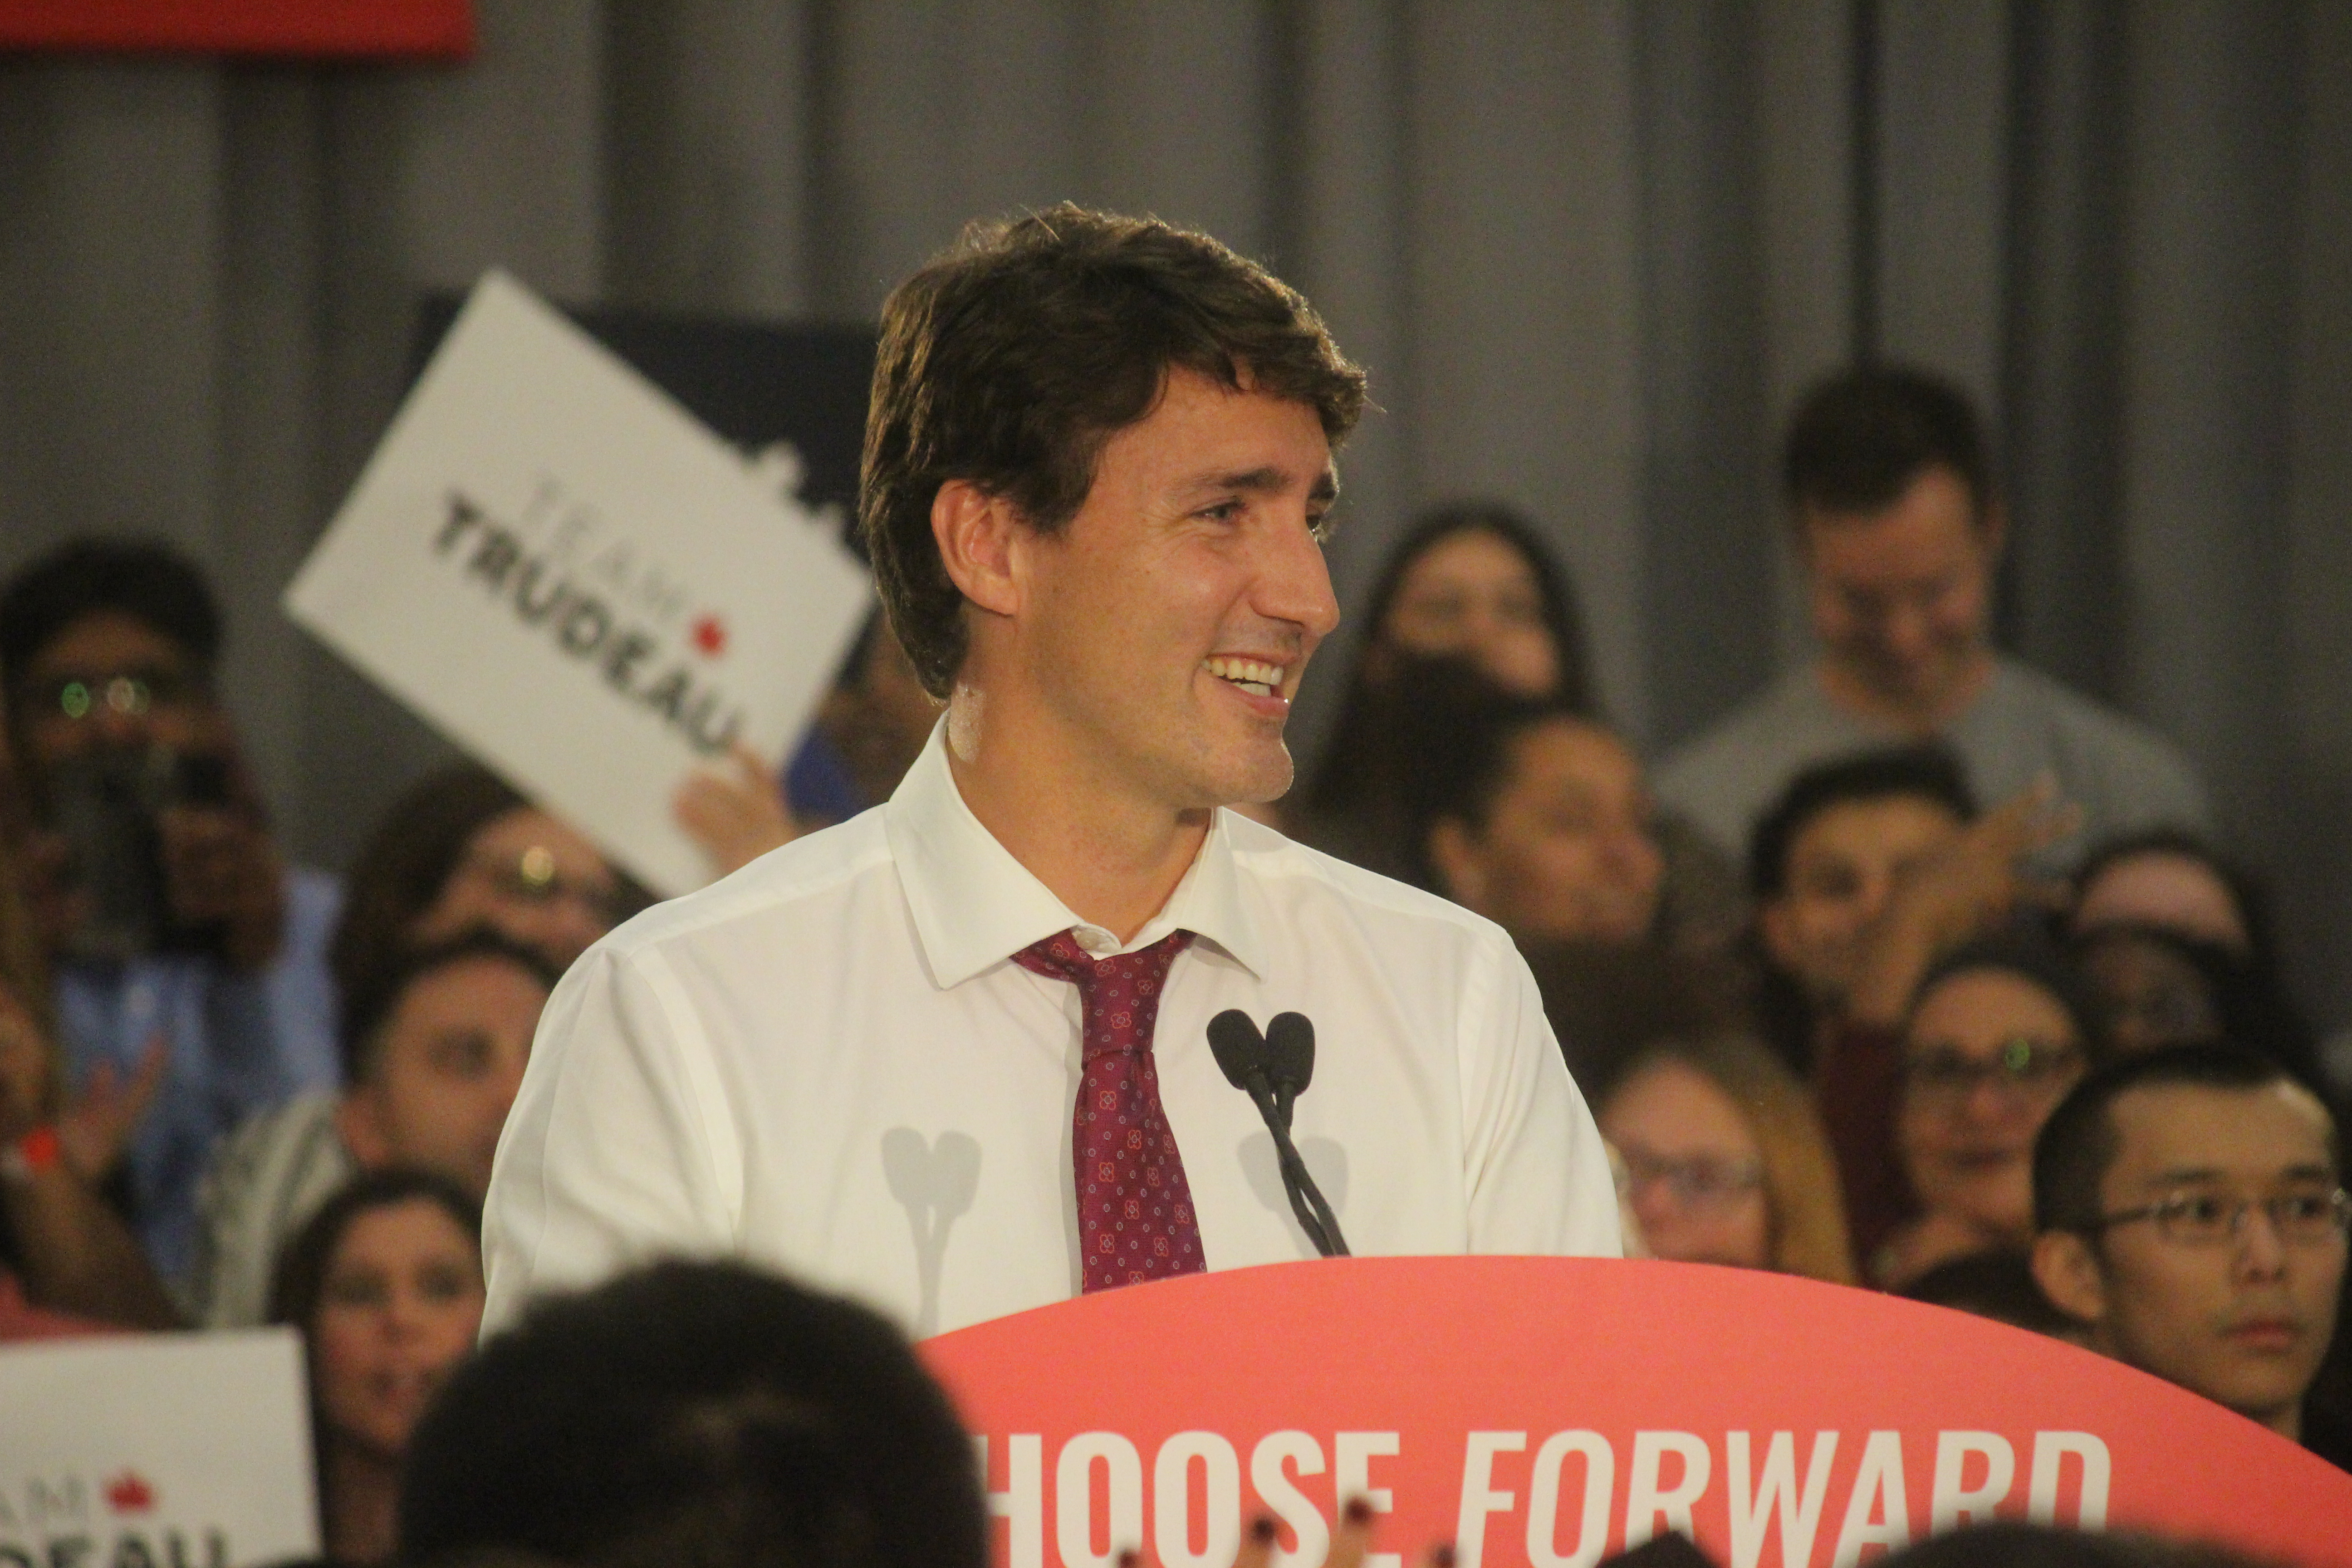 Prime Minister Justin Trudeau smiles as he addresses a Liberal rally at the St. Clair Centre for the Arts, Windsor, September 16, 2019. Photo by Mark Brown/Blackburn News.